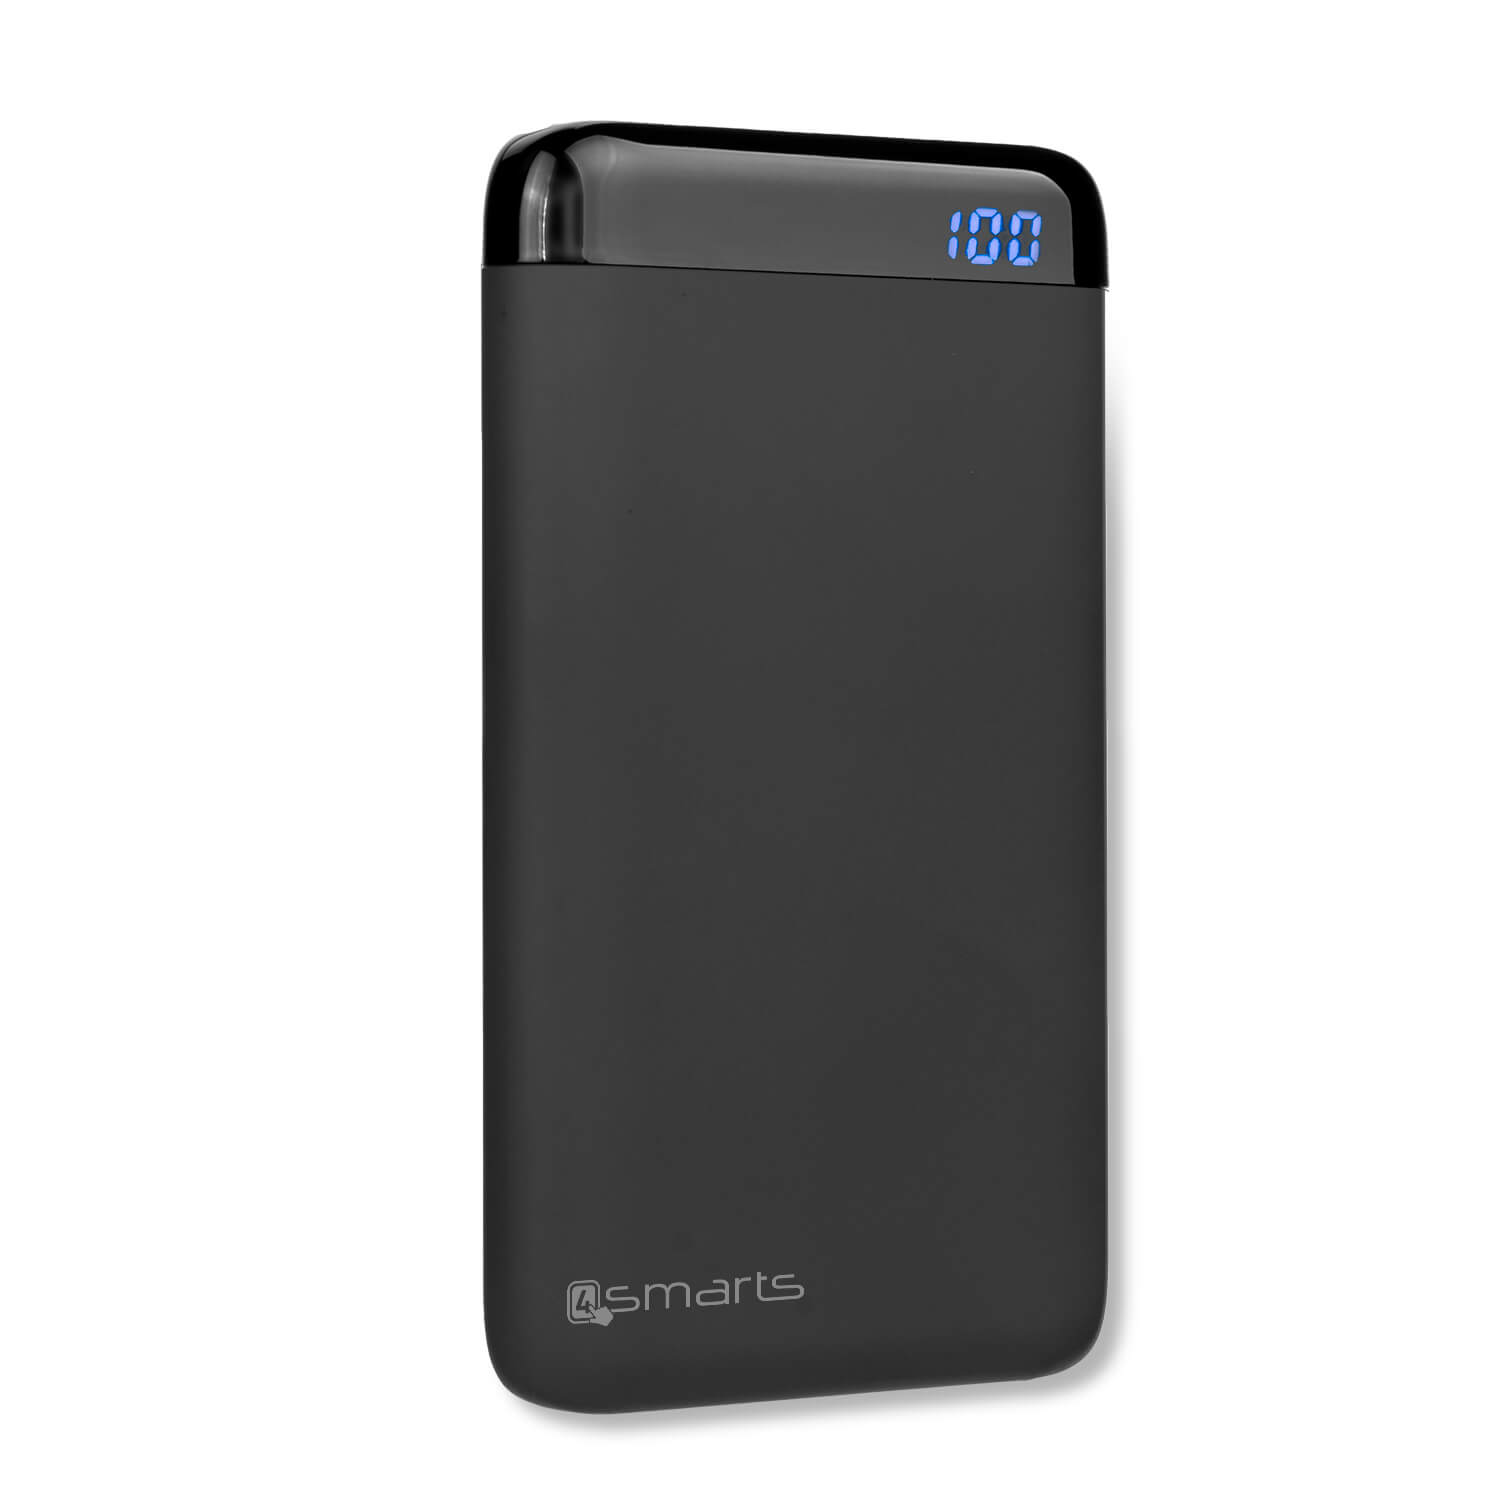 4smarts Power Bank VoltHub 6000 mAh - външна батерия с два USB и USB-C изходи (черен)